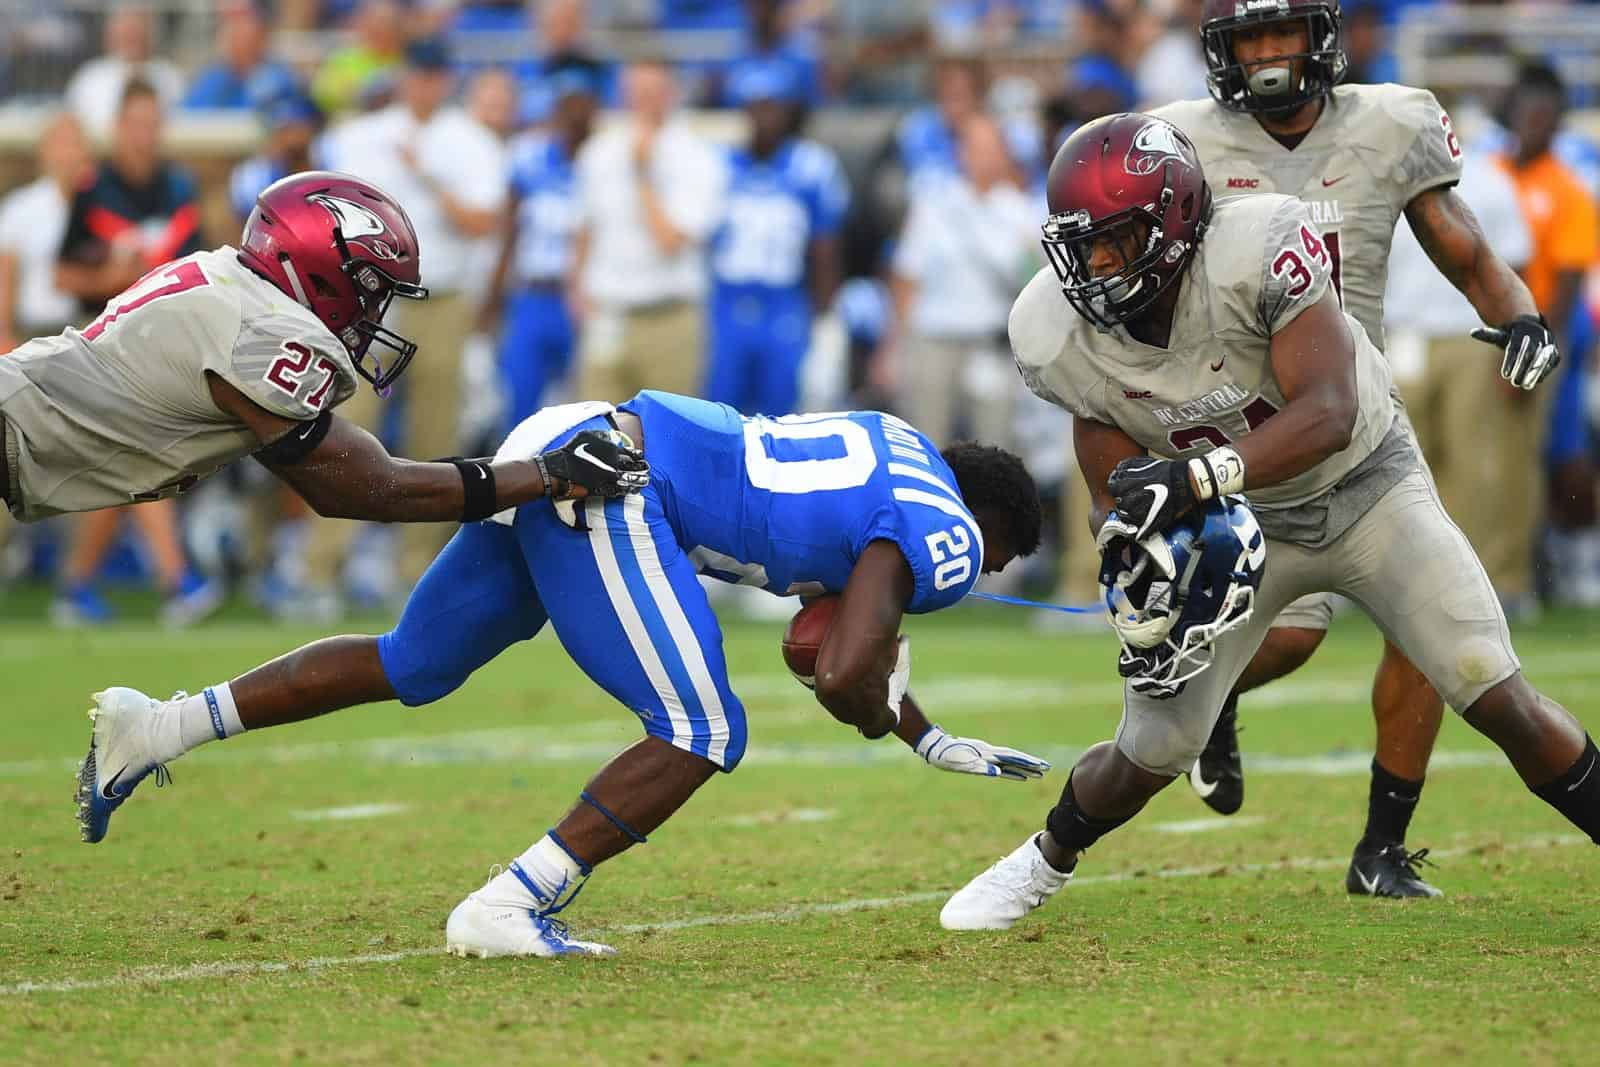 NC Central Eagles